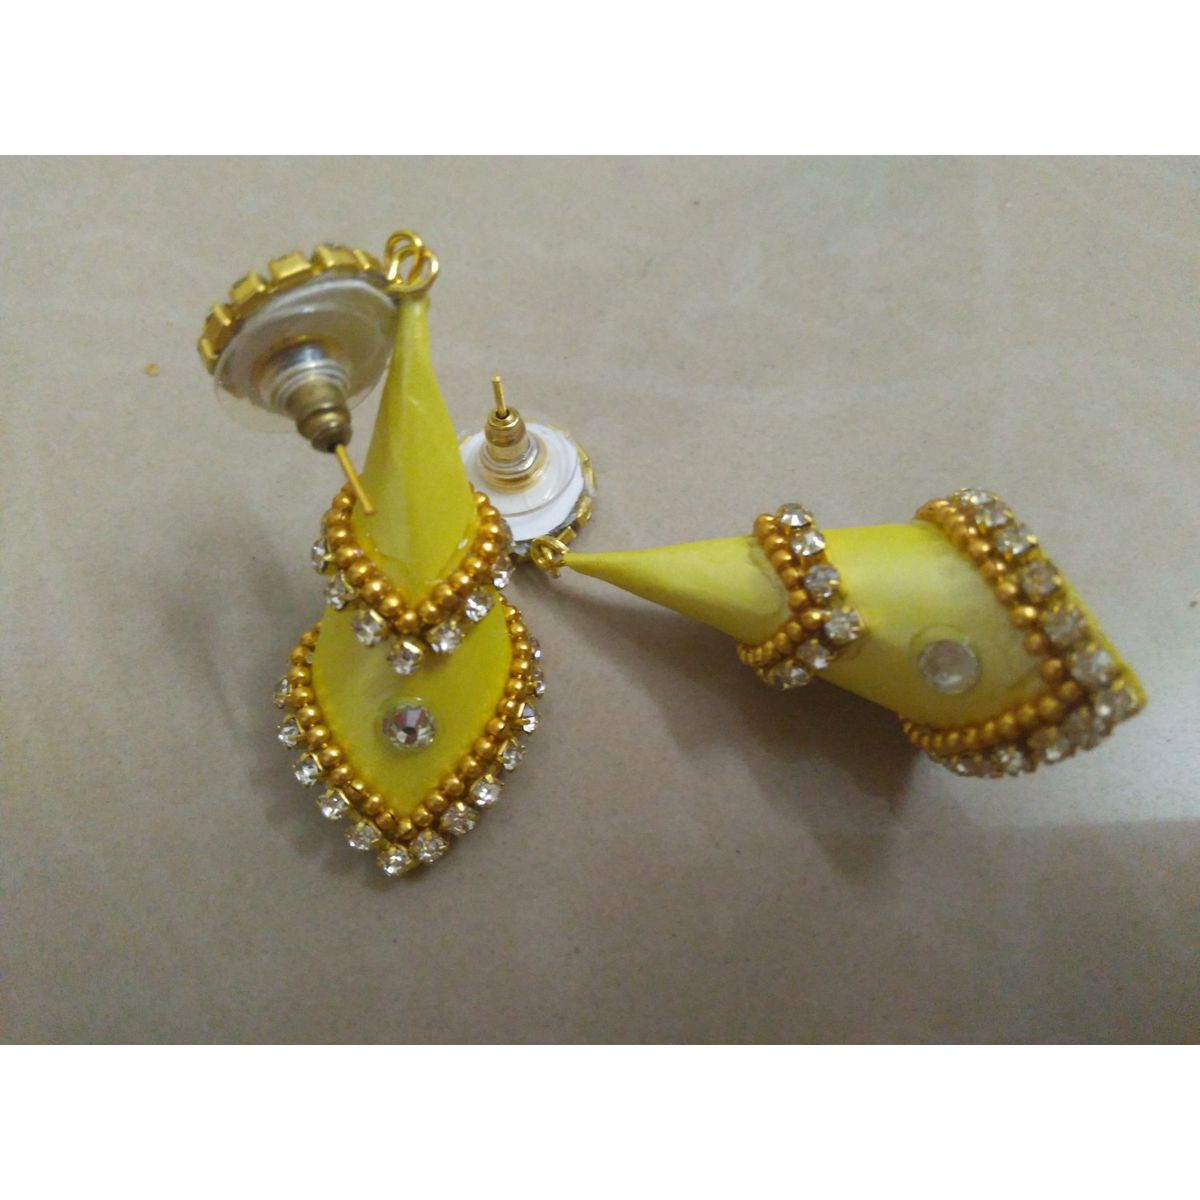 a wholesale lot com earring l fashion quality shamballa earrings stud good jewelry tapdoanprime price